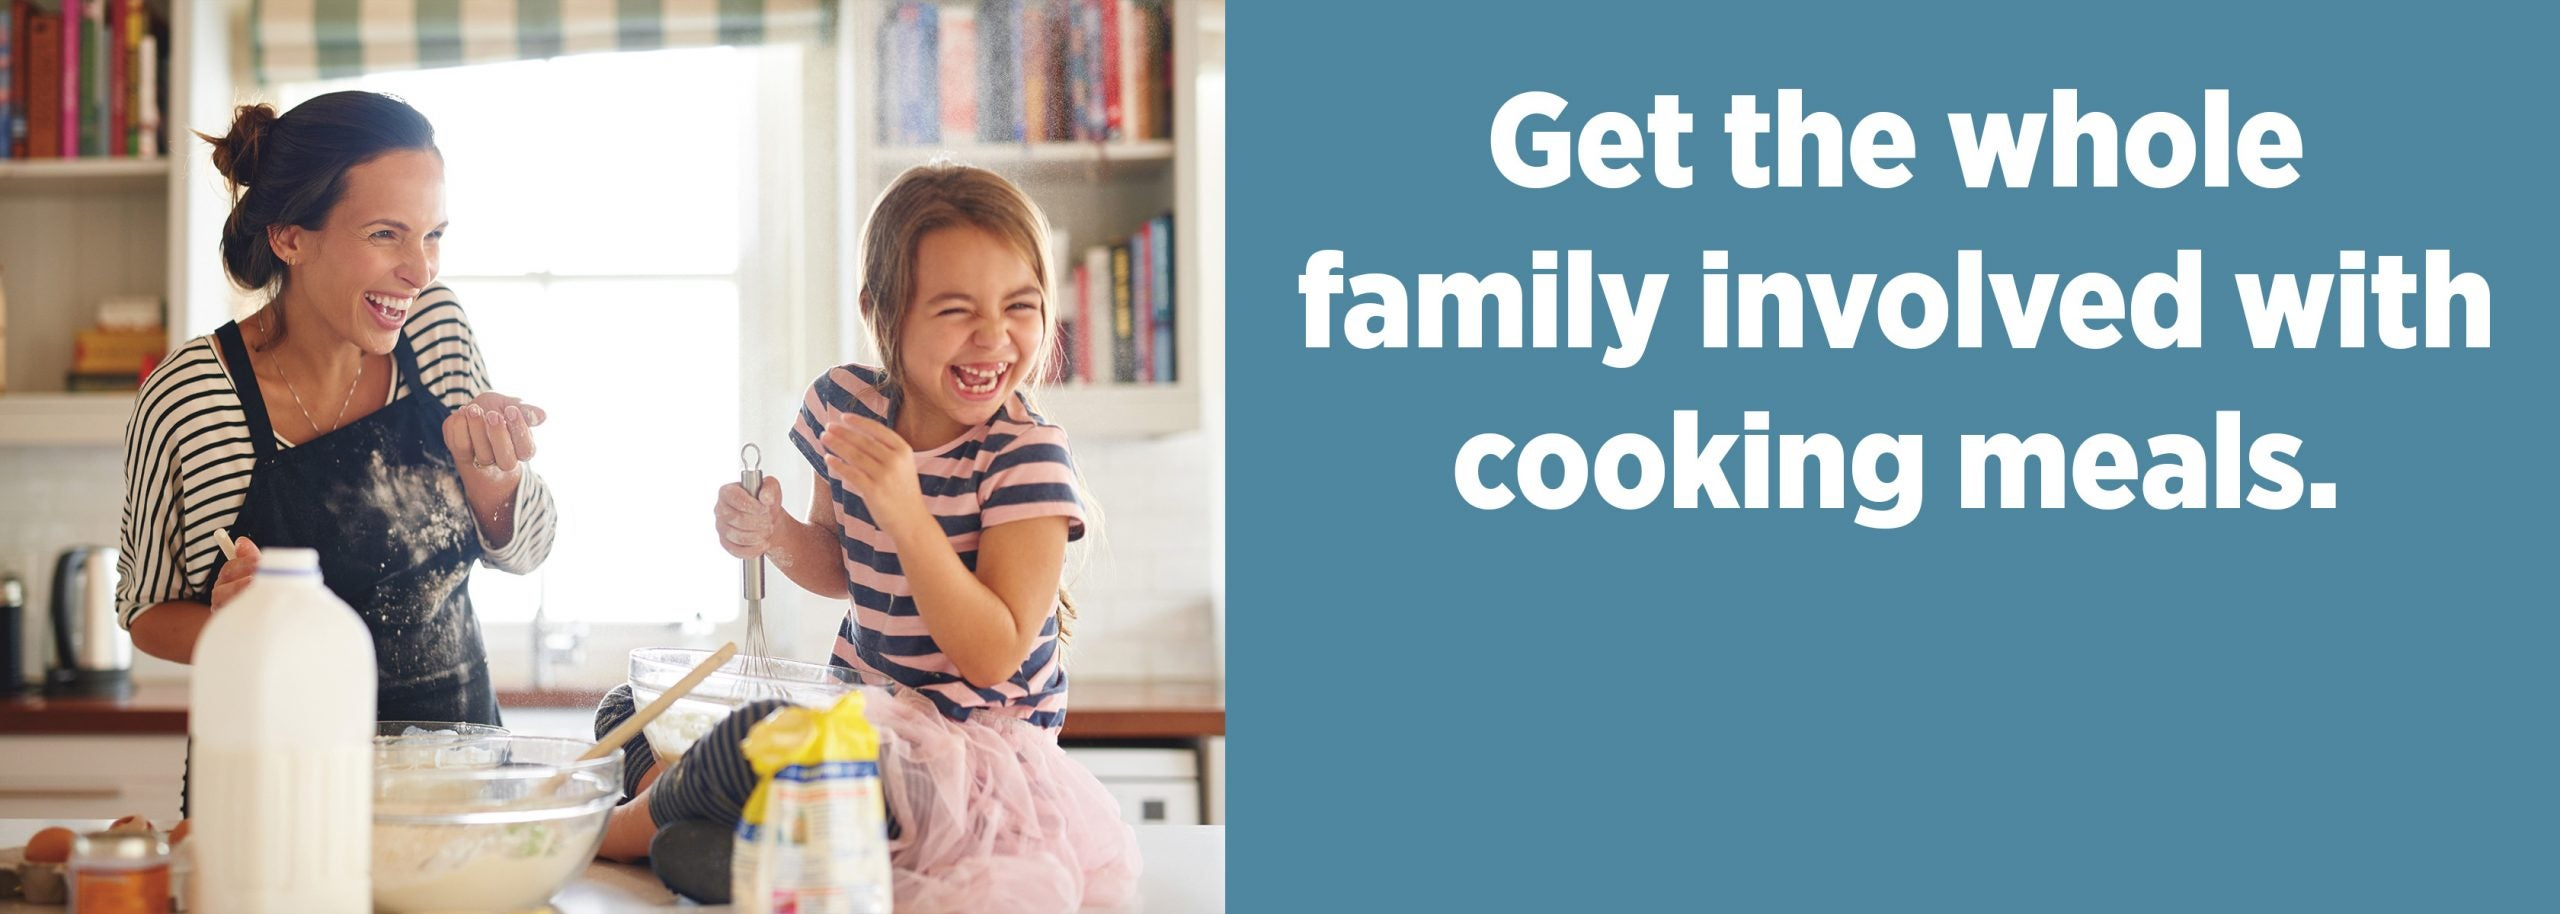 Get the wholefamily involved withcooking meals.